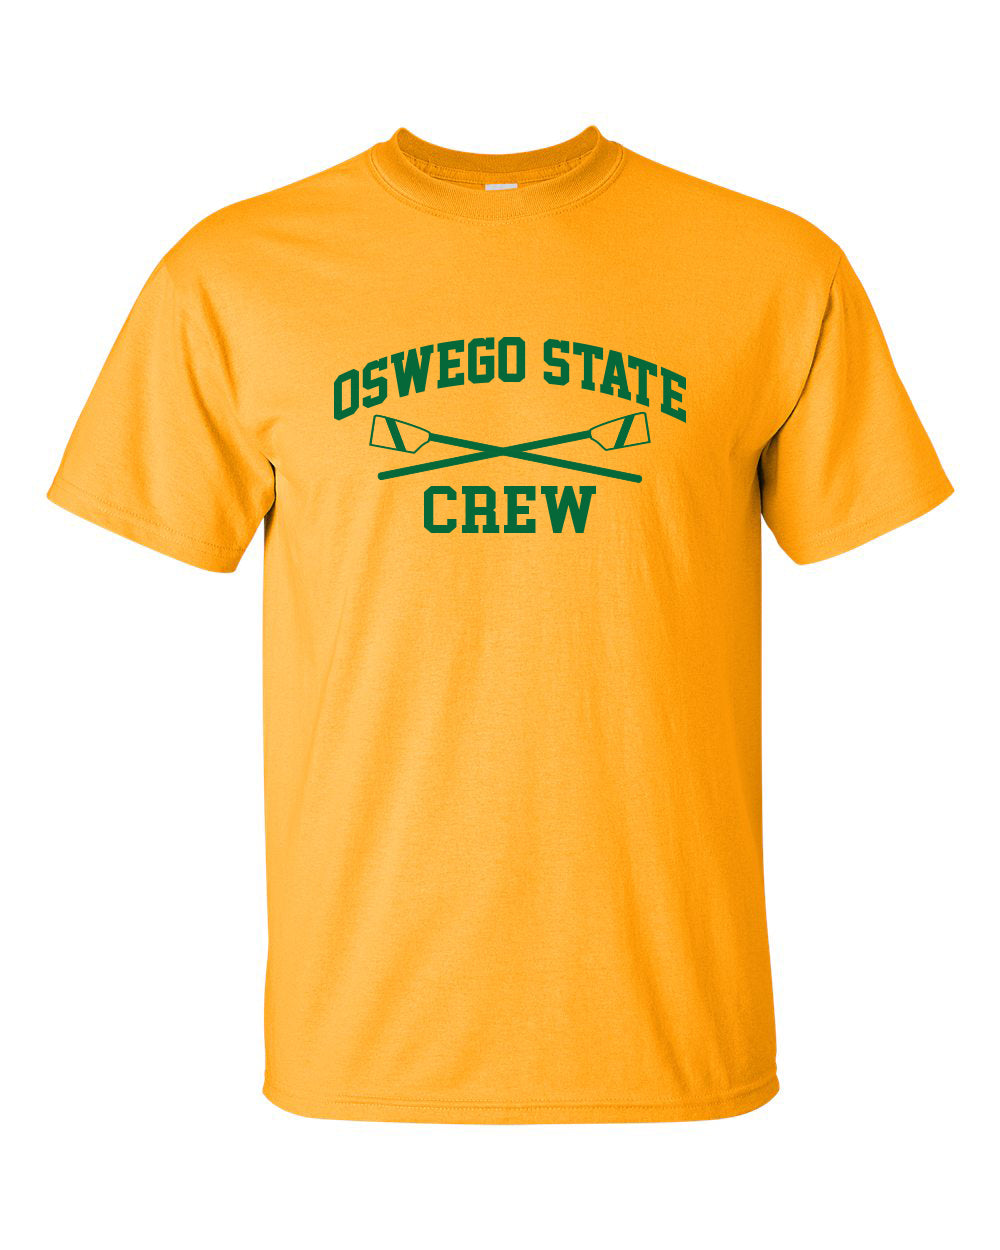 100% Cotton Oswego State Crew Men's Team Spirit T-Shirt